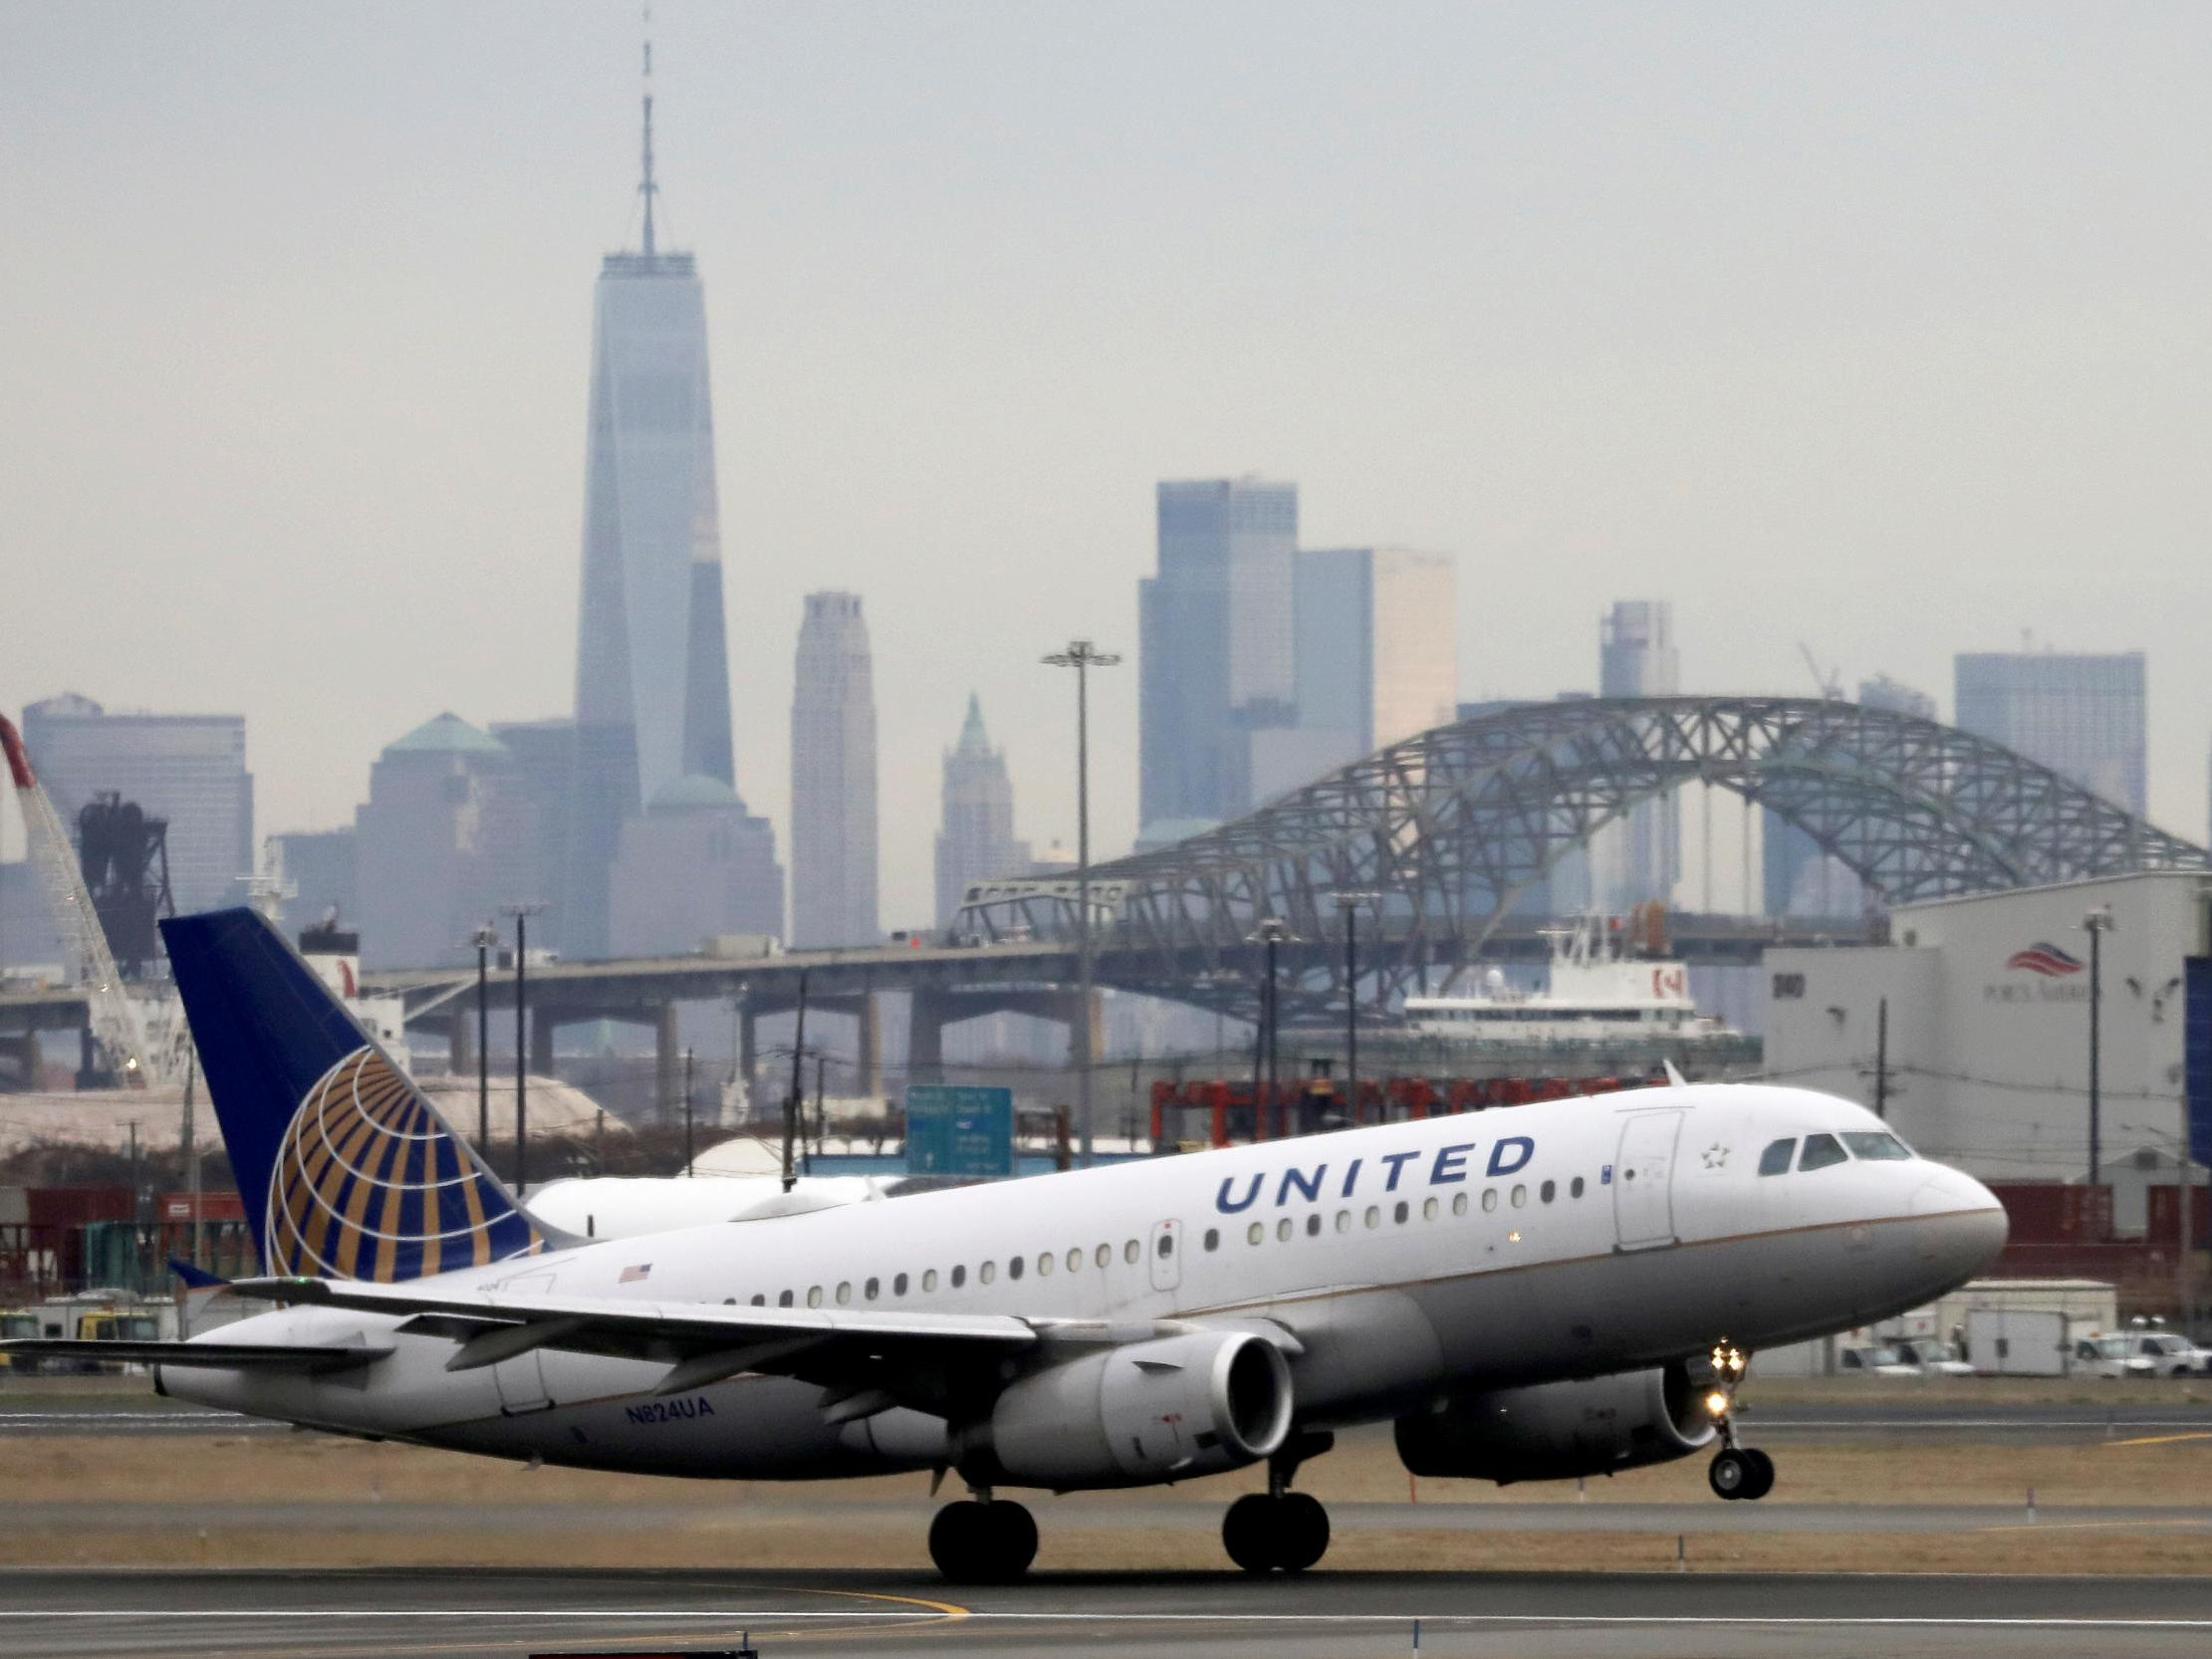 United Airlines Sending Layoff Notices To Nearly Half Of Us Employees The Independent The Independent